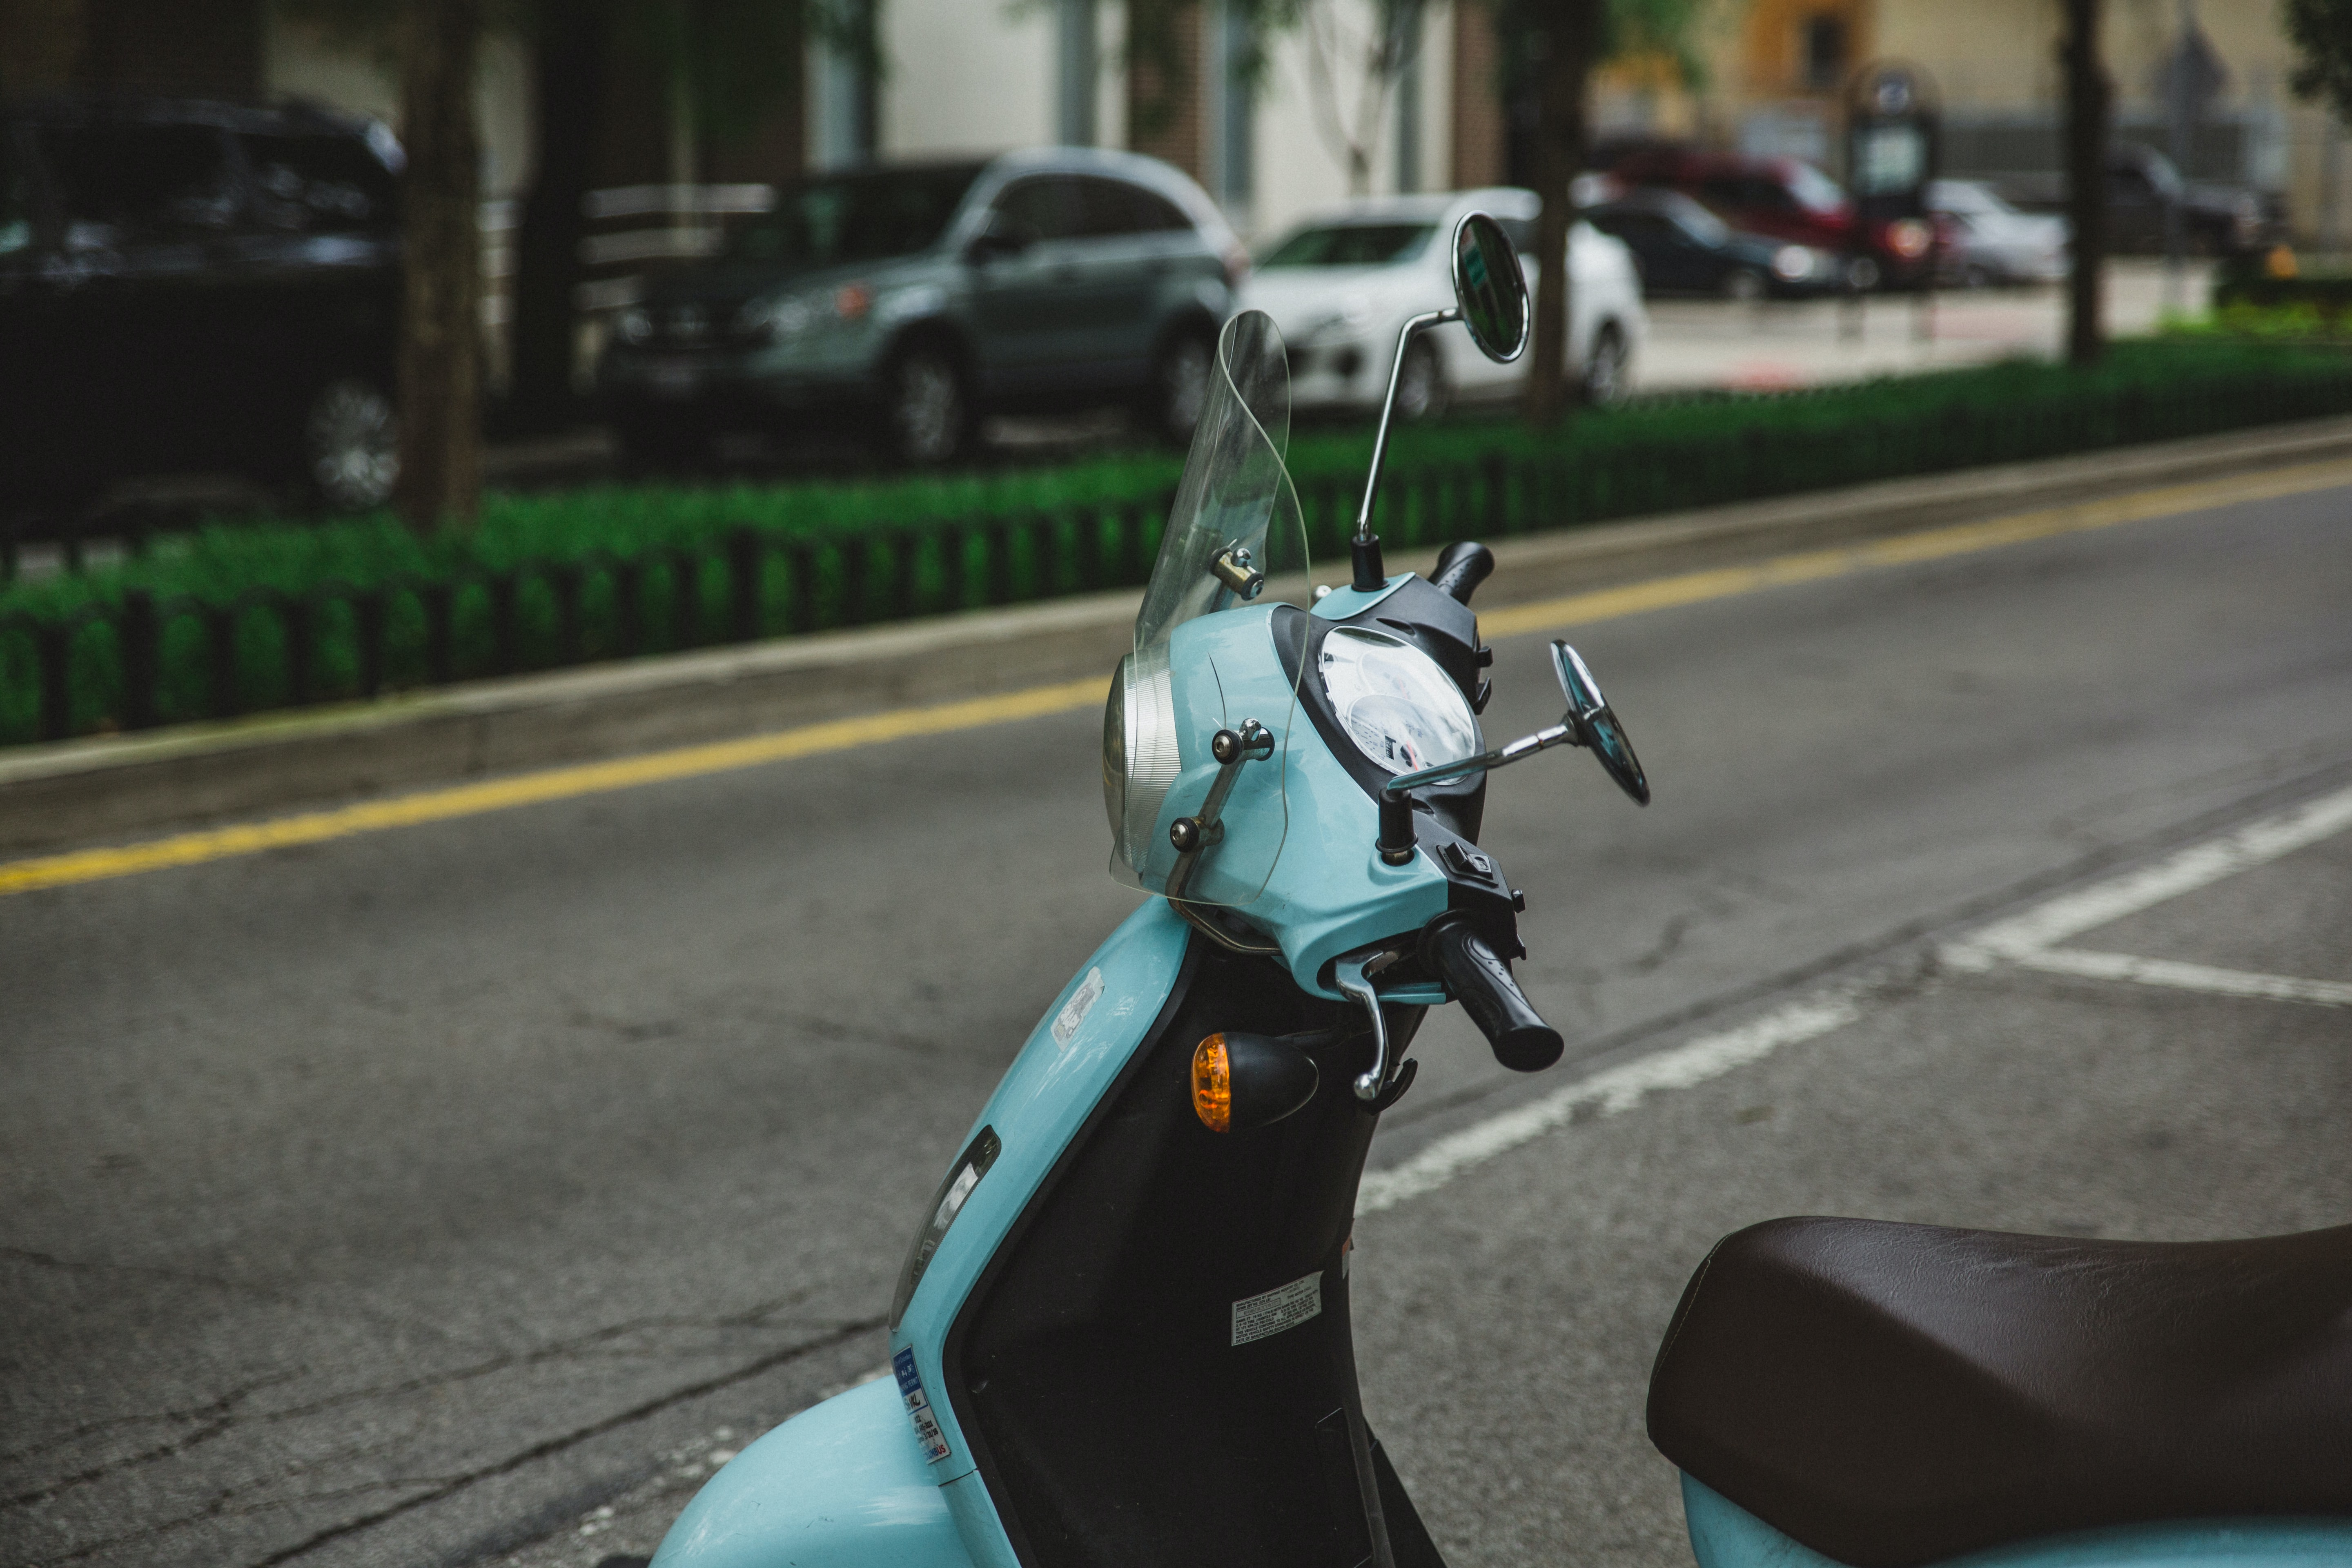 Turquoise blue moped parked on a calm city street